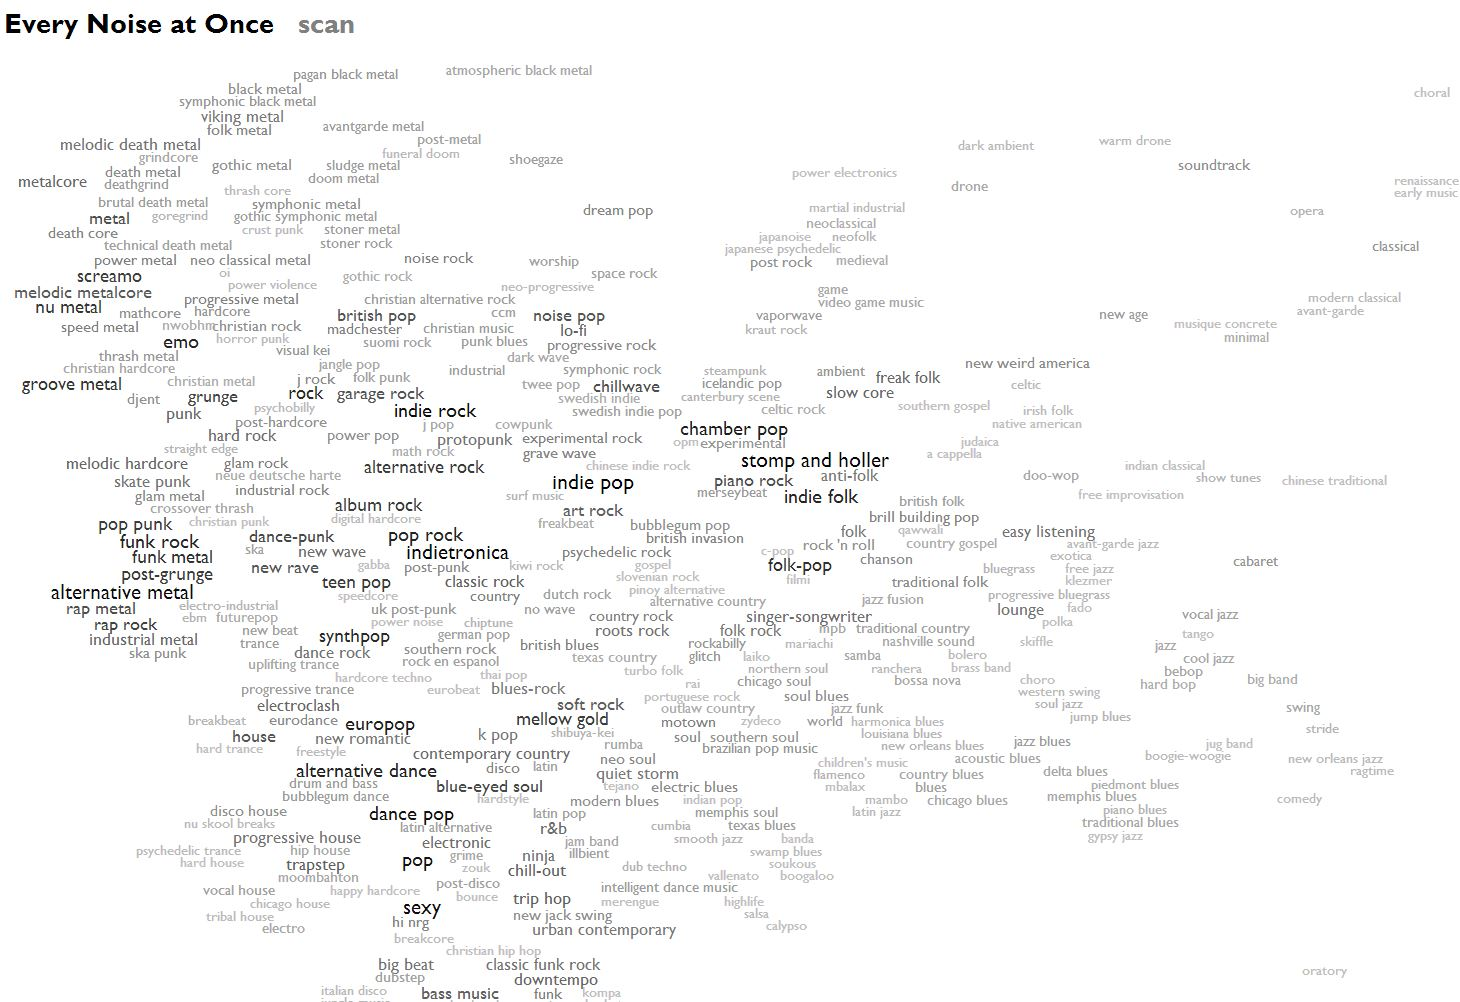 Every noise at once map listen to every music genre ever interactive map click to listen interactive music genre map